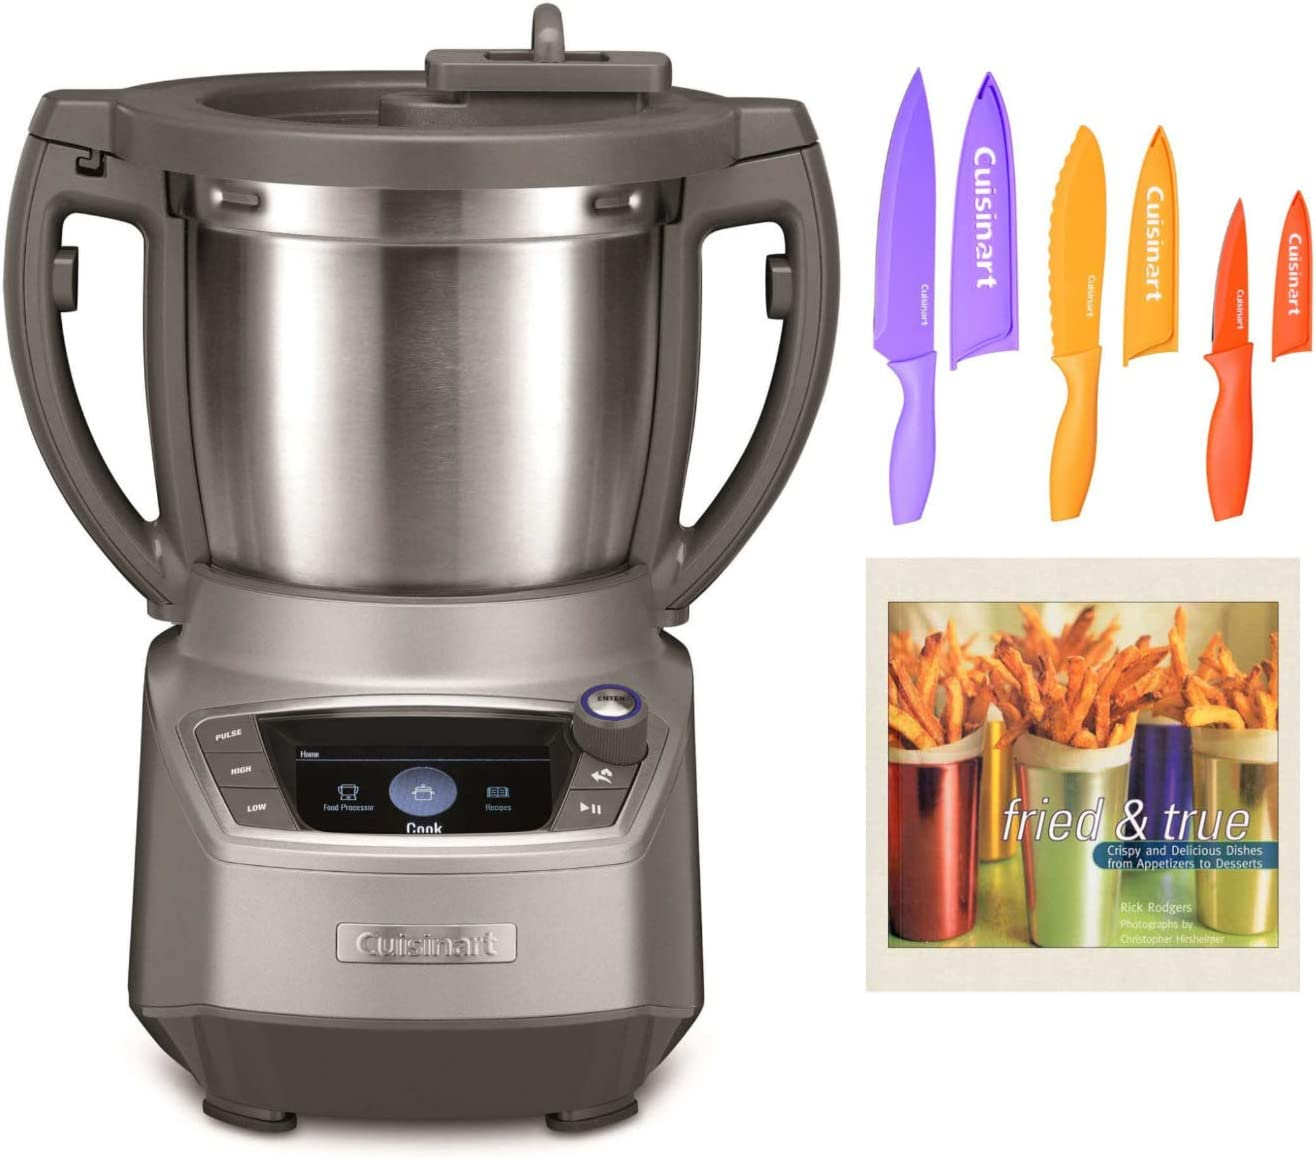 Cuisinart FPC-100 Complete Chef Cooking Food Processor with 6-Piece Nonstick Color Chef Knife Set and Cookbook Bundle (3 Items)